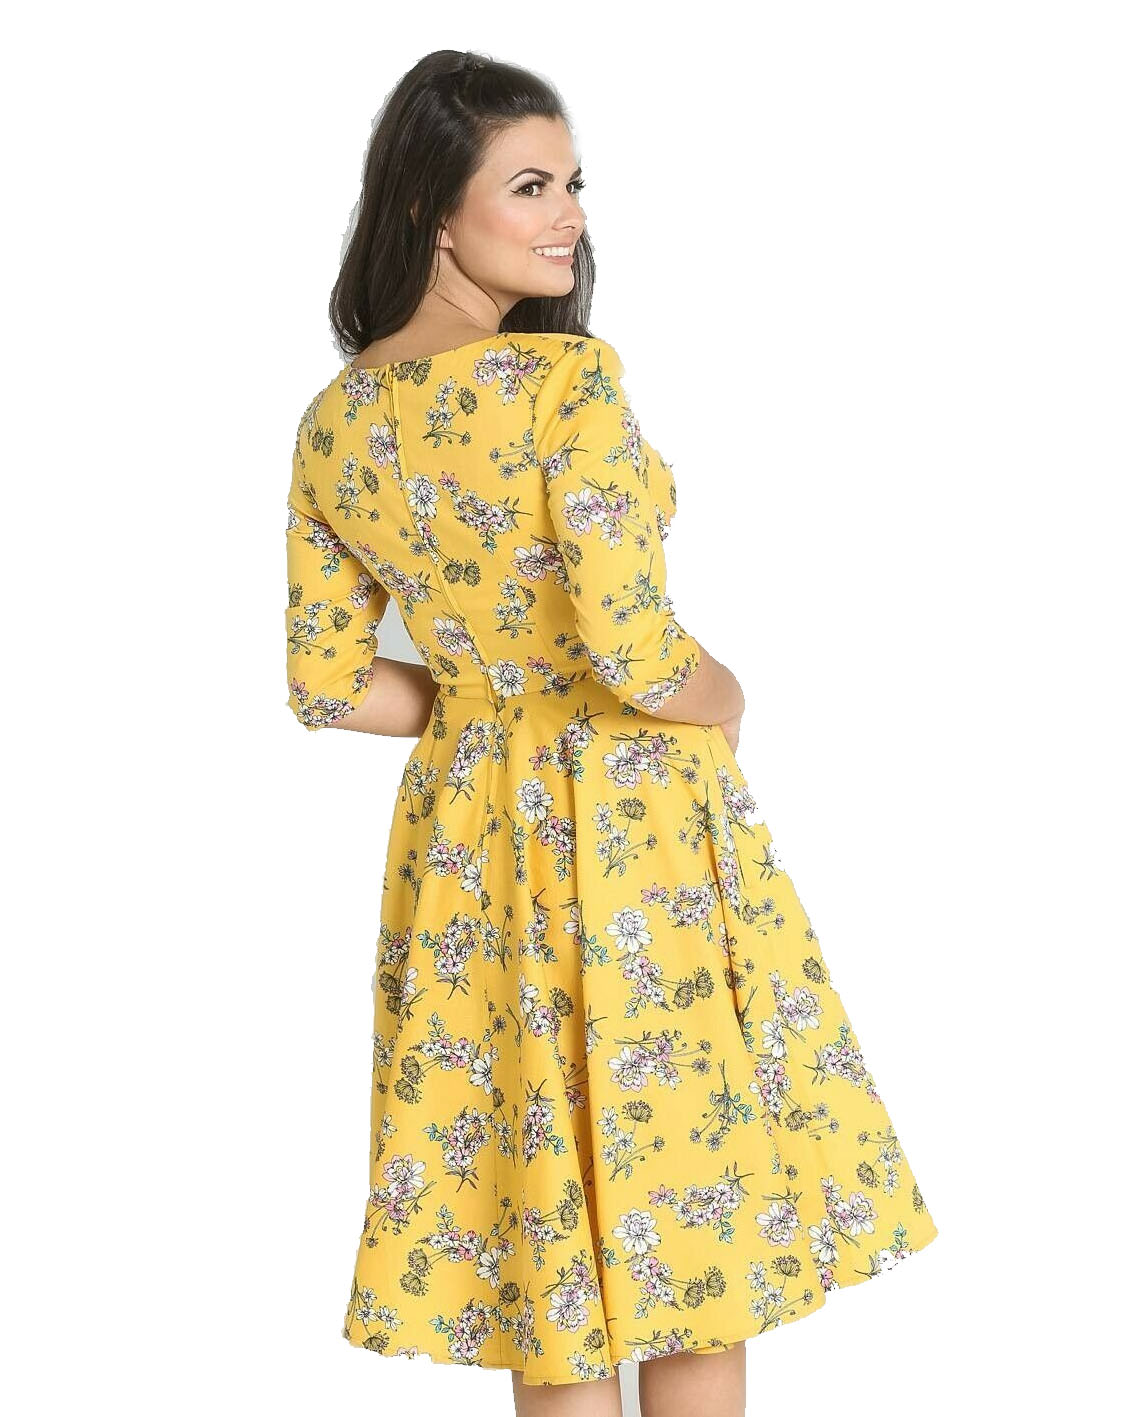 Hell-Bunny-40s-50s-Pin-Up-Vintage-Dress-MURIEL-Flowers-Yellow-All-Sizes thumbnail 17